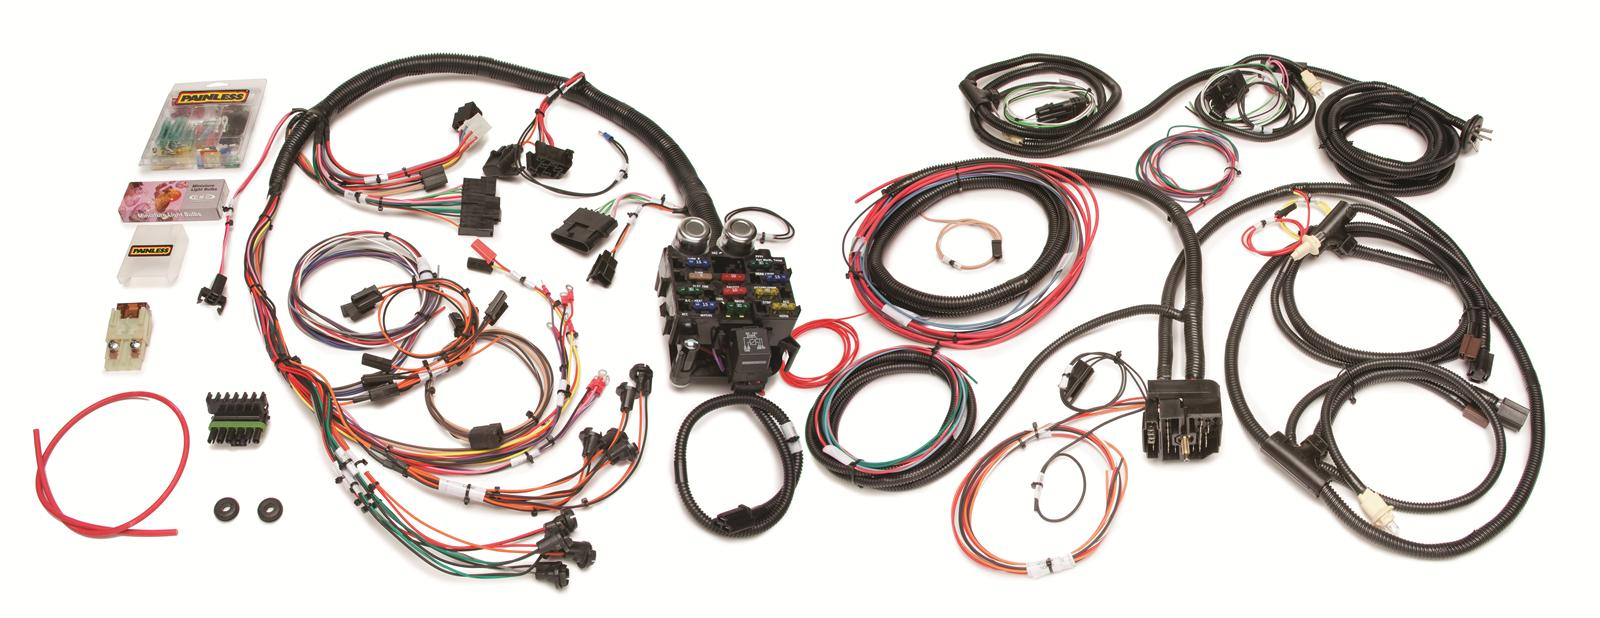 prf 10110_xl painless performance 21 circuit direct fit jeep cj harnesses 10110 wiring harness for 1977 jeep cj-5 at creativeand.co